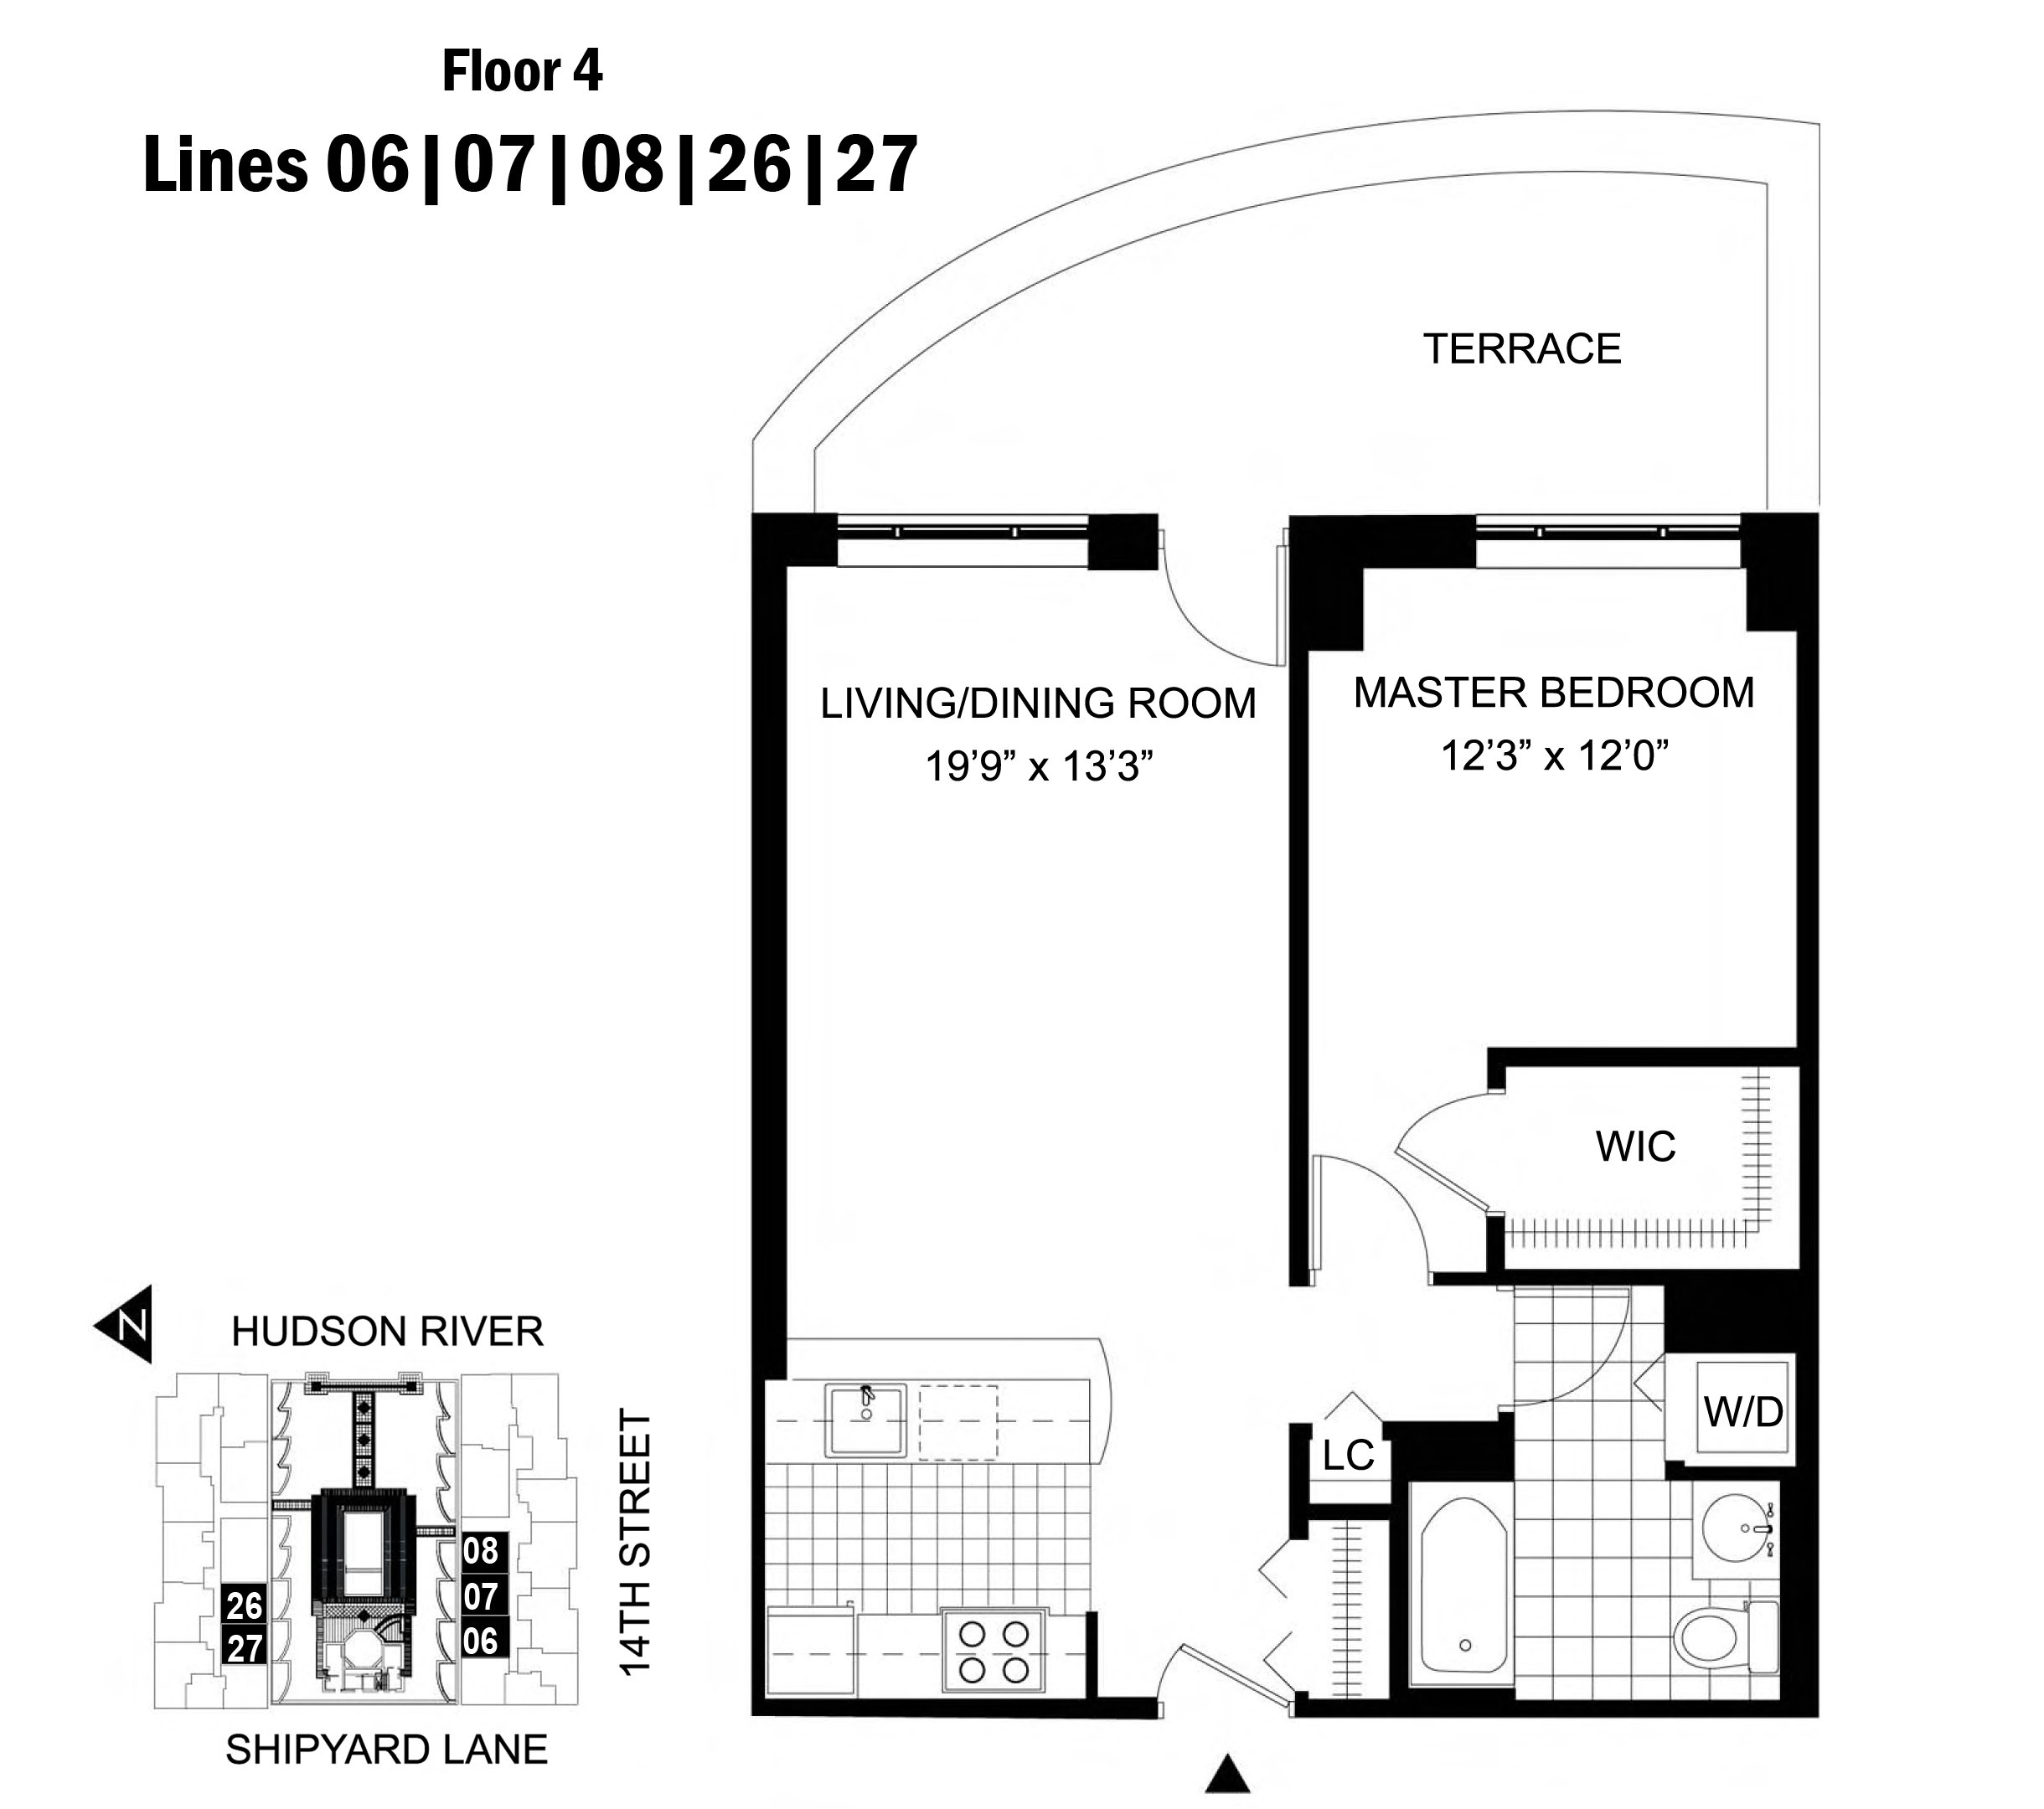 824  1 Bedroom  1   3 180   3 230  780  10 19 2017  PDF. Sovereign at the Shipyard Hoboken Luxury Apartments for Rent   Applied